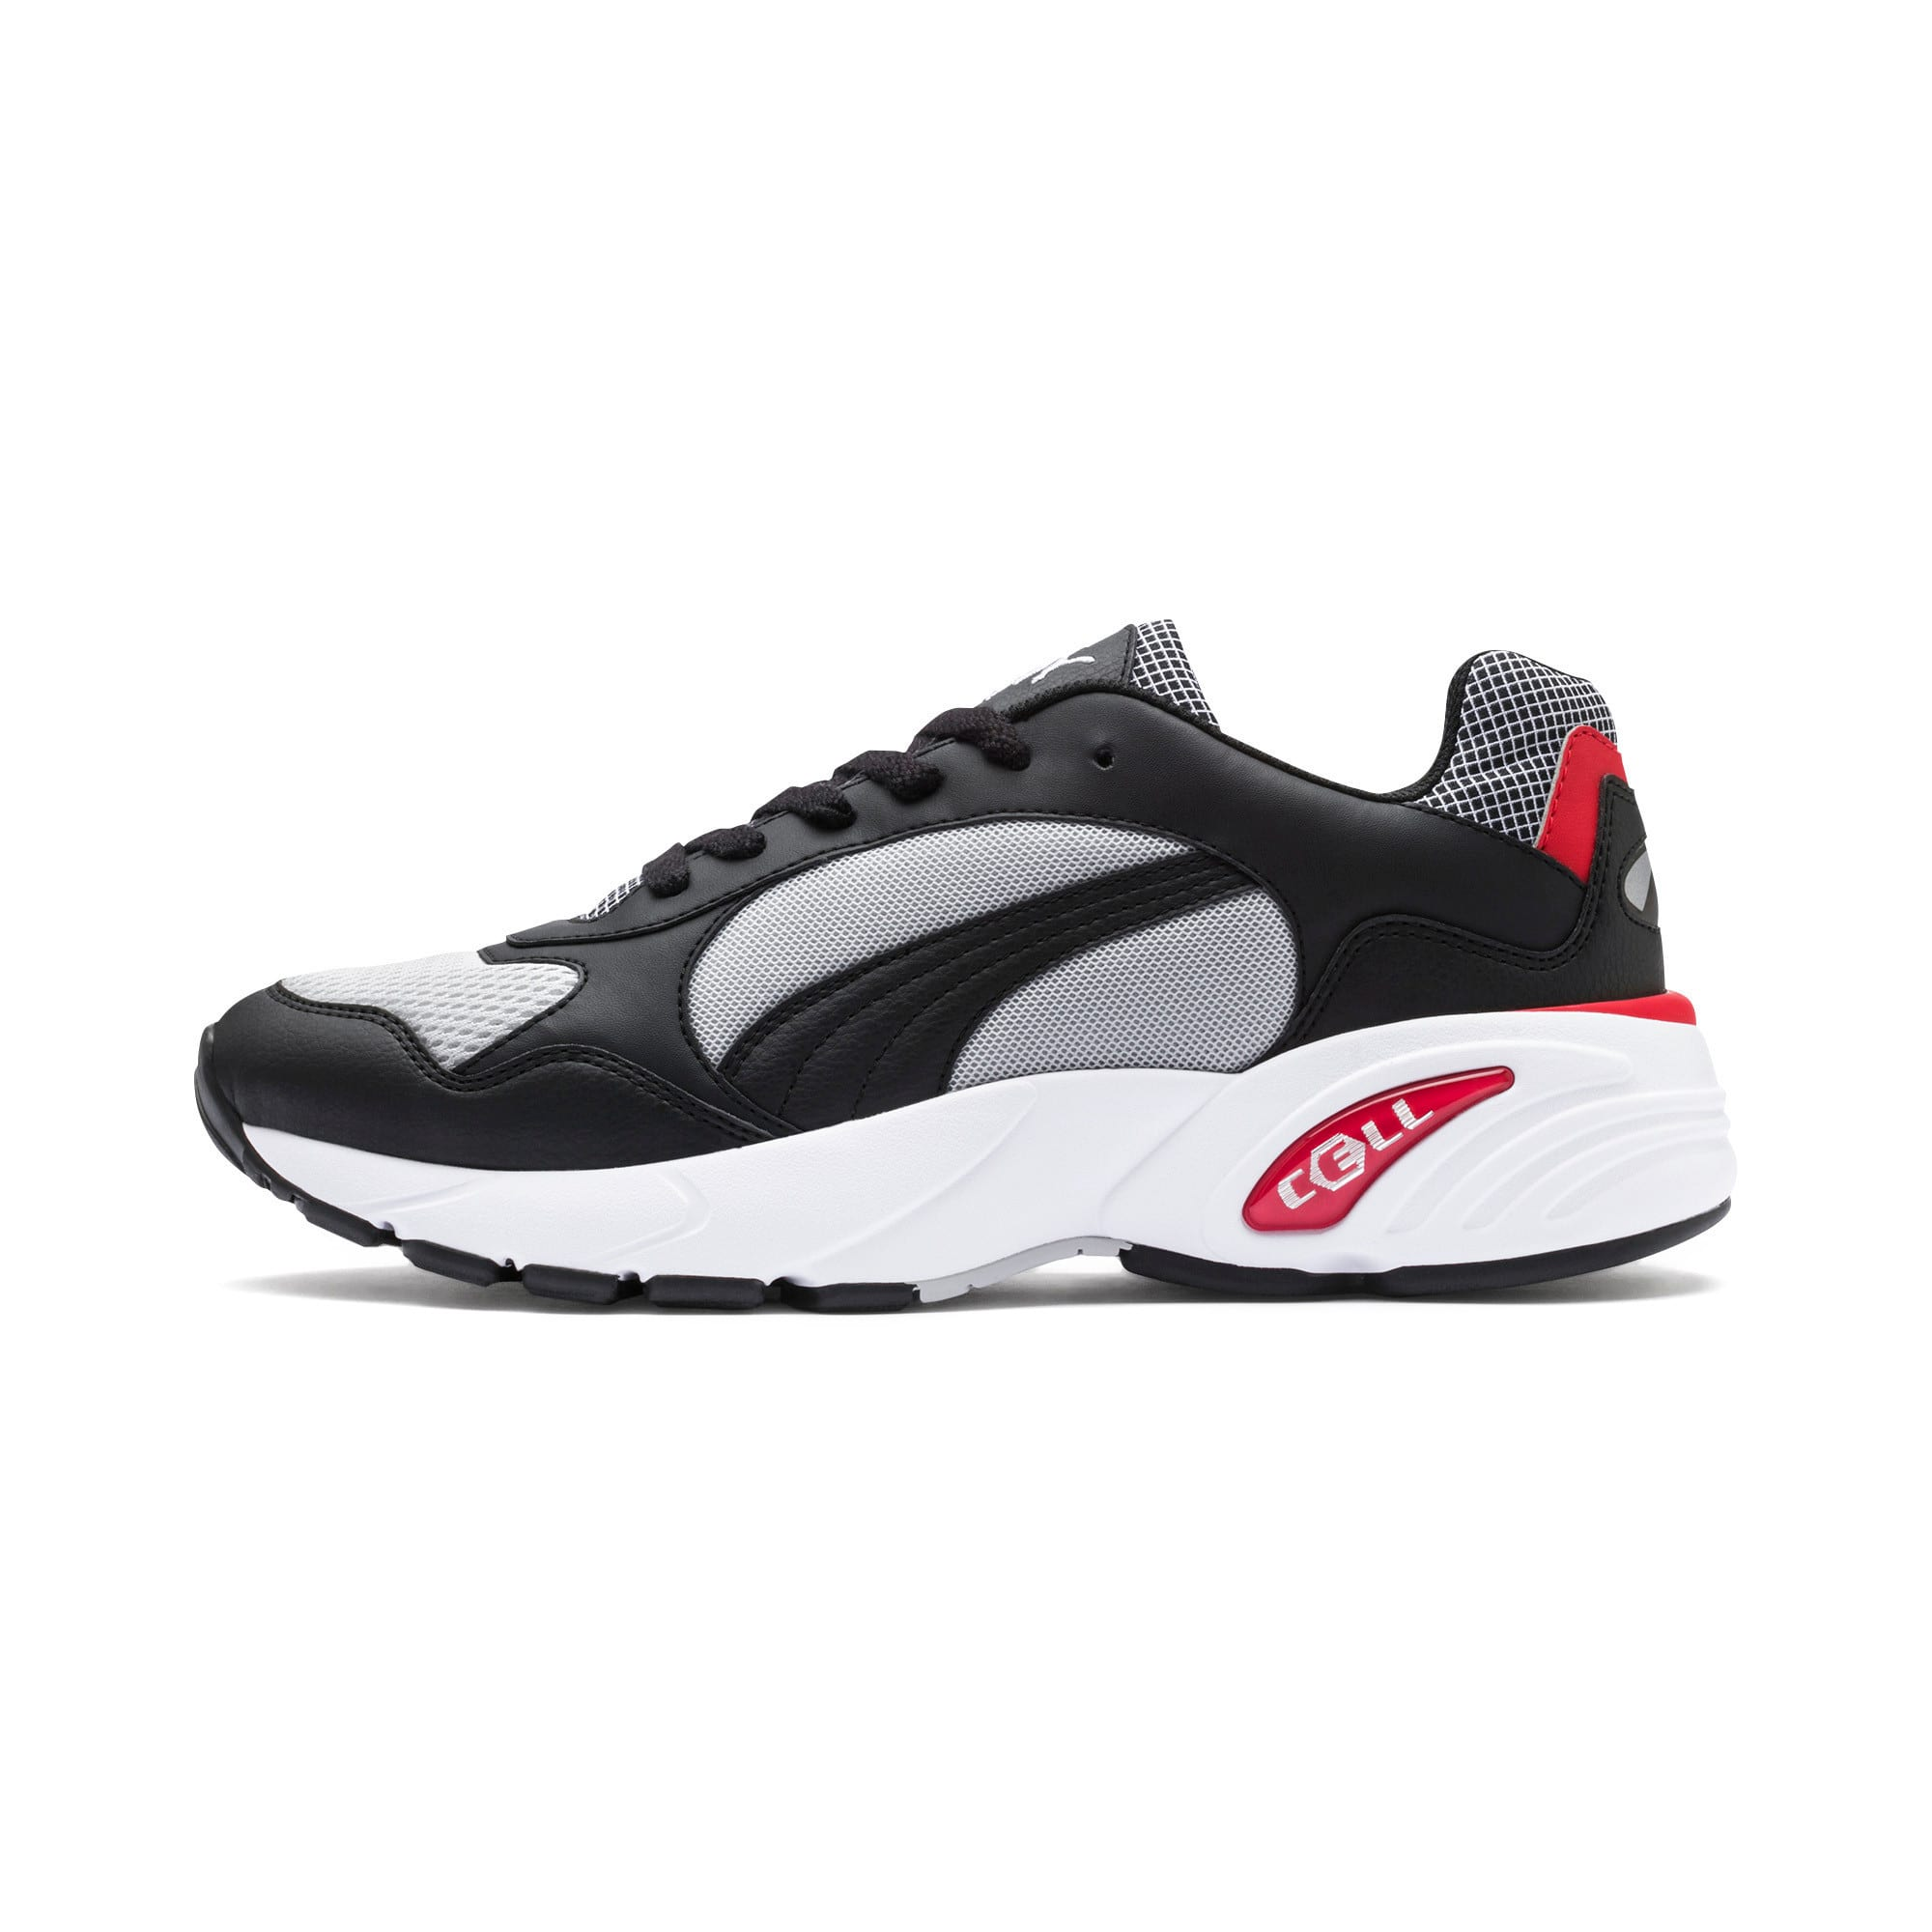 Thumbnail 1 of CELL Viper Street Racer Trainers, High Rise-Puma Black, medium-IND